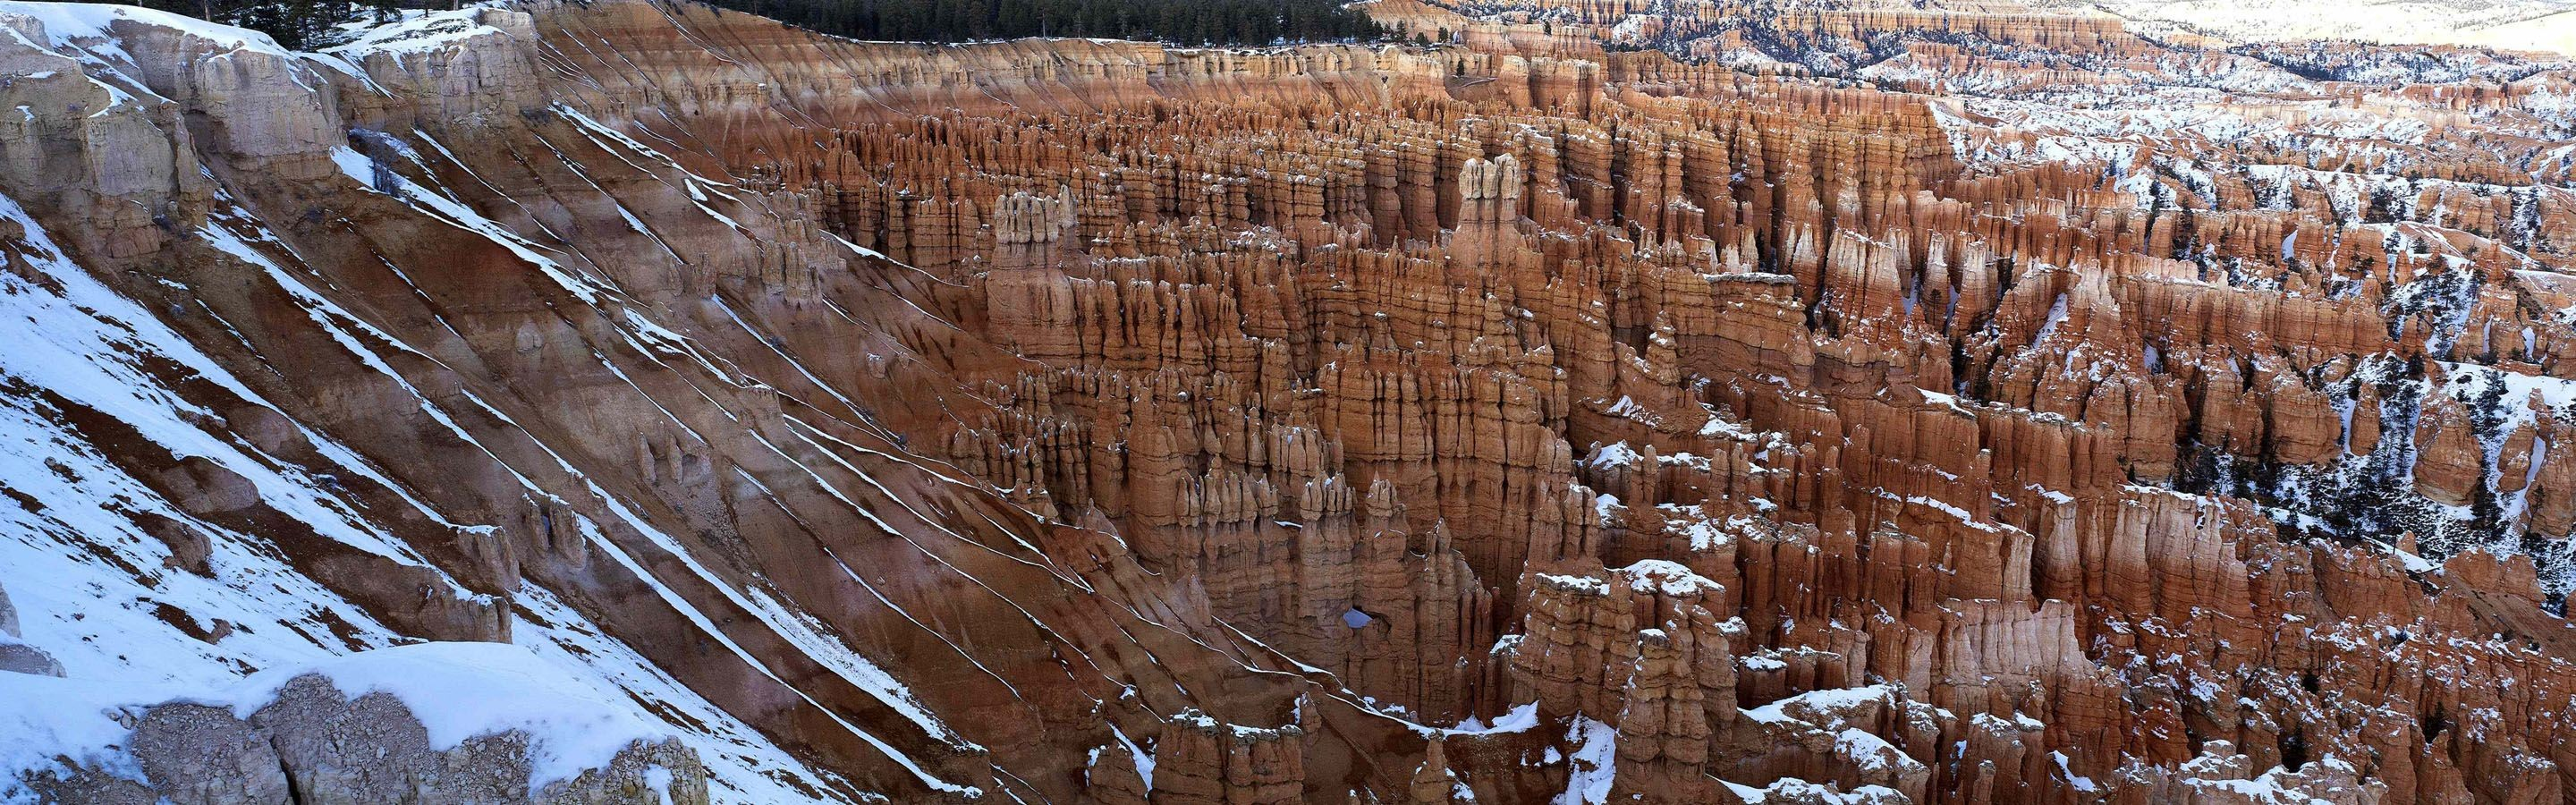 snow deserts rocks bryce HD Wallpaper